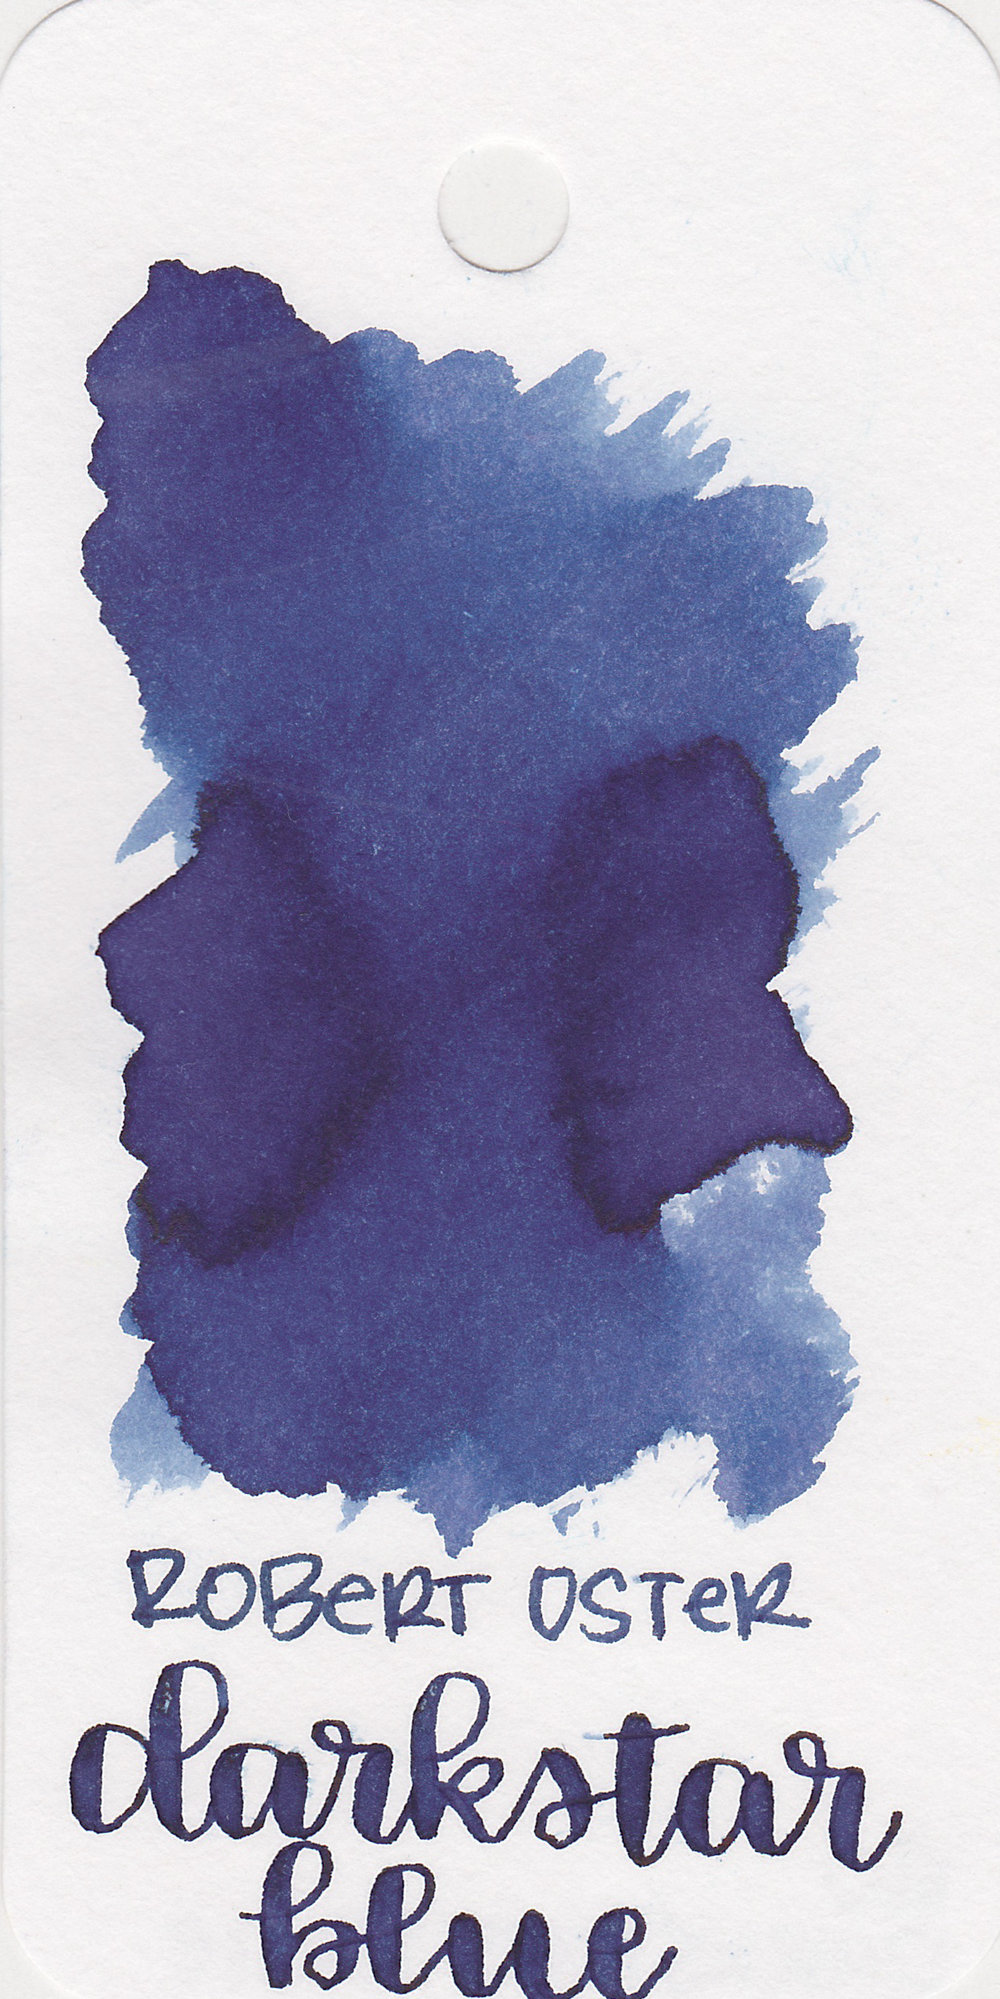 The color: - Darkstar Blue is a beautiful dark blue with a purple undertone.